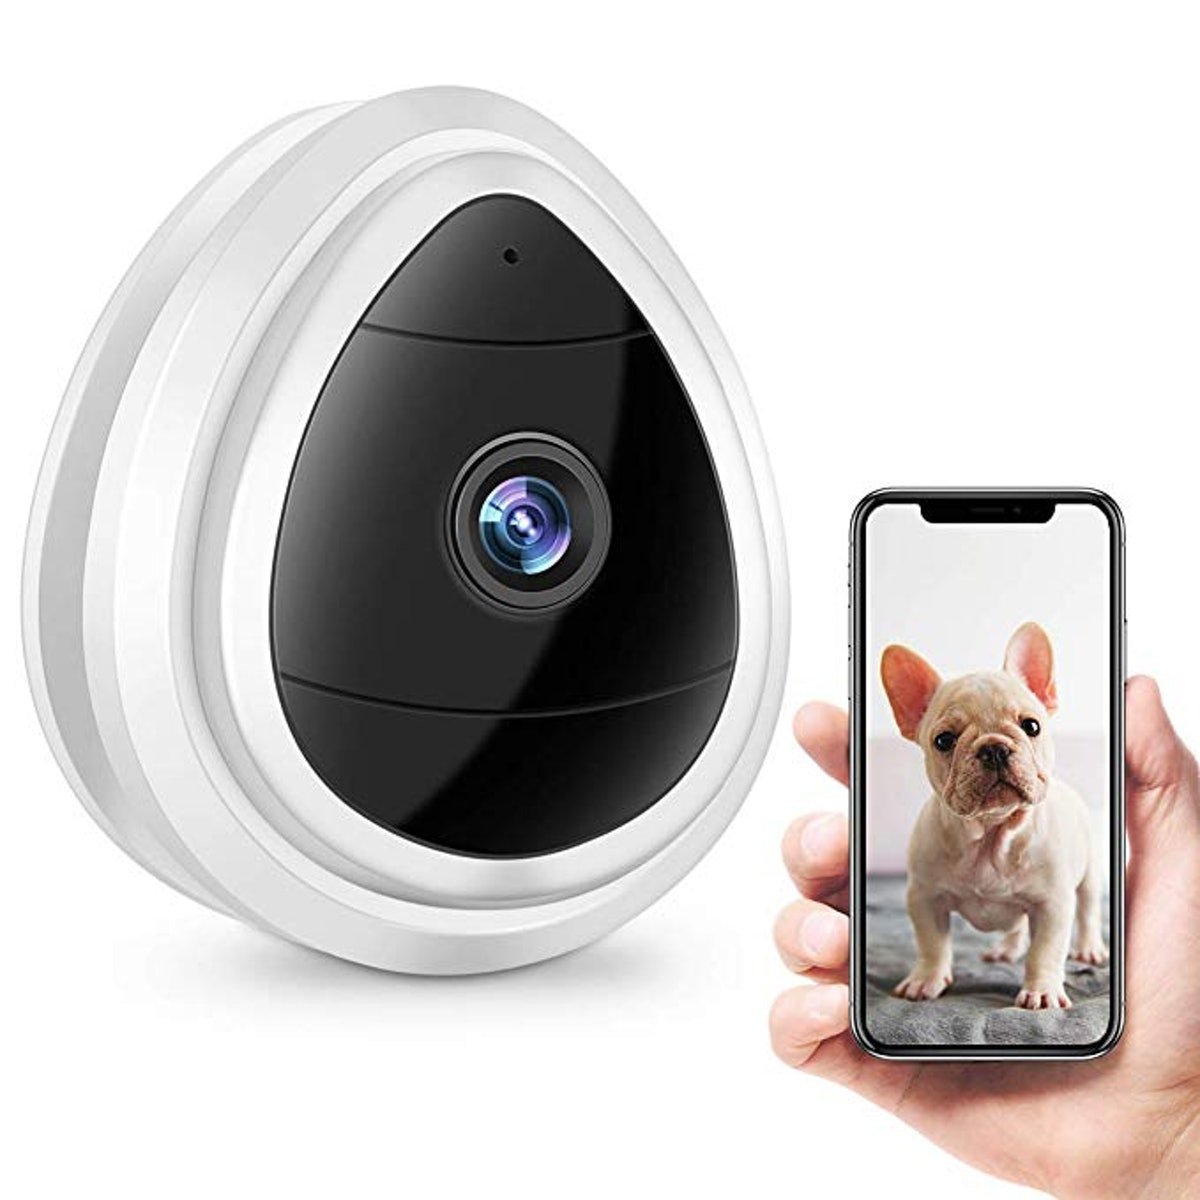 PVCTY Wireless Security Camera